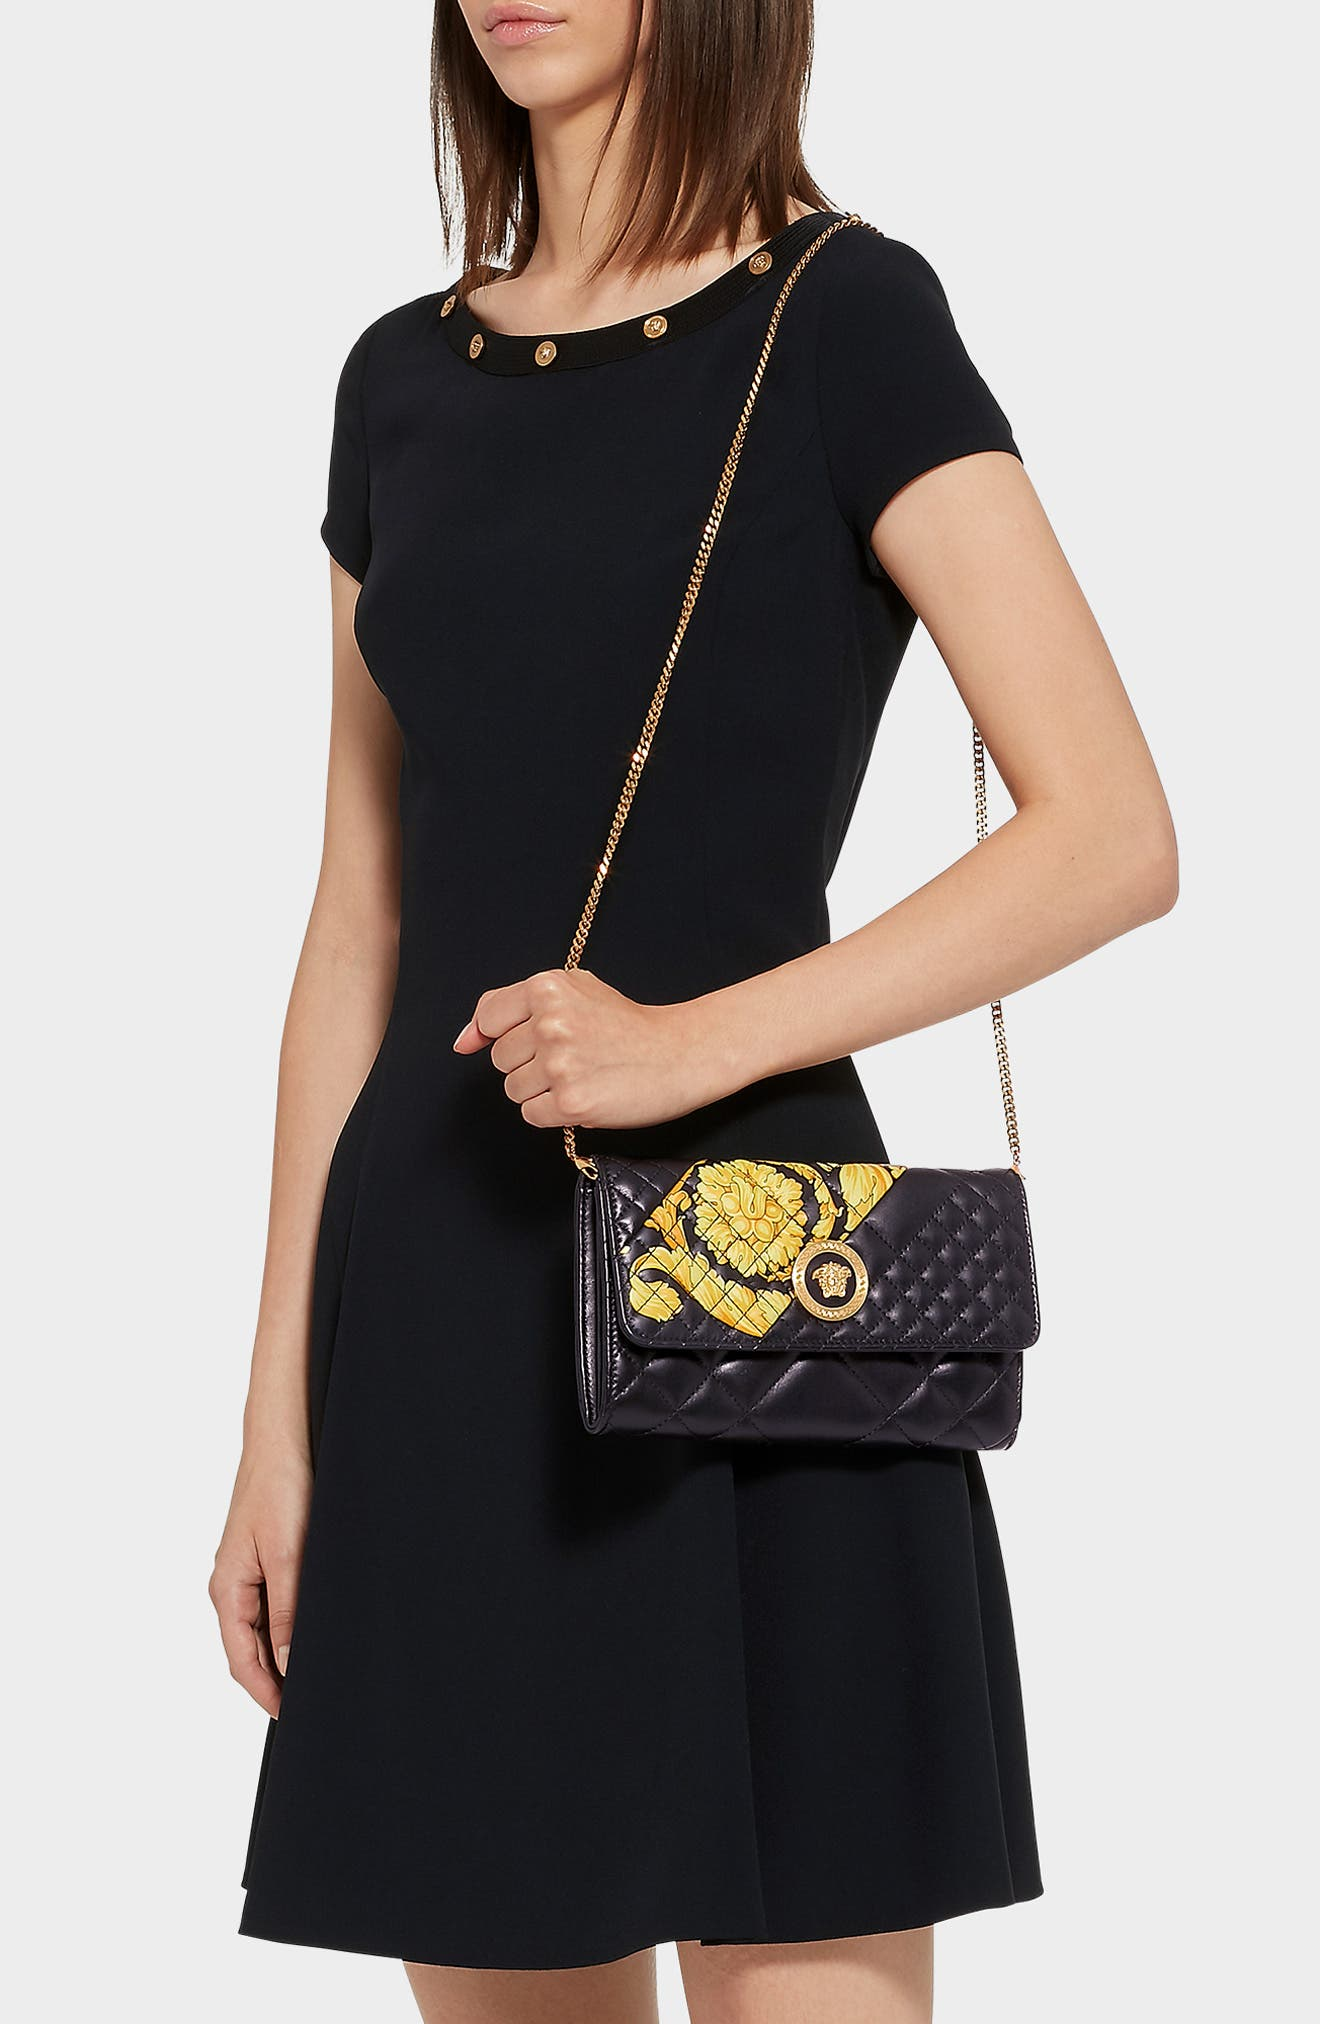 Baroque Icon Quilted Leather Crossbody Bag,                             Alternate thumbnail 2, color,                             BLACK MULTI/ TRIBUTE GOLD